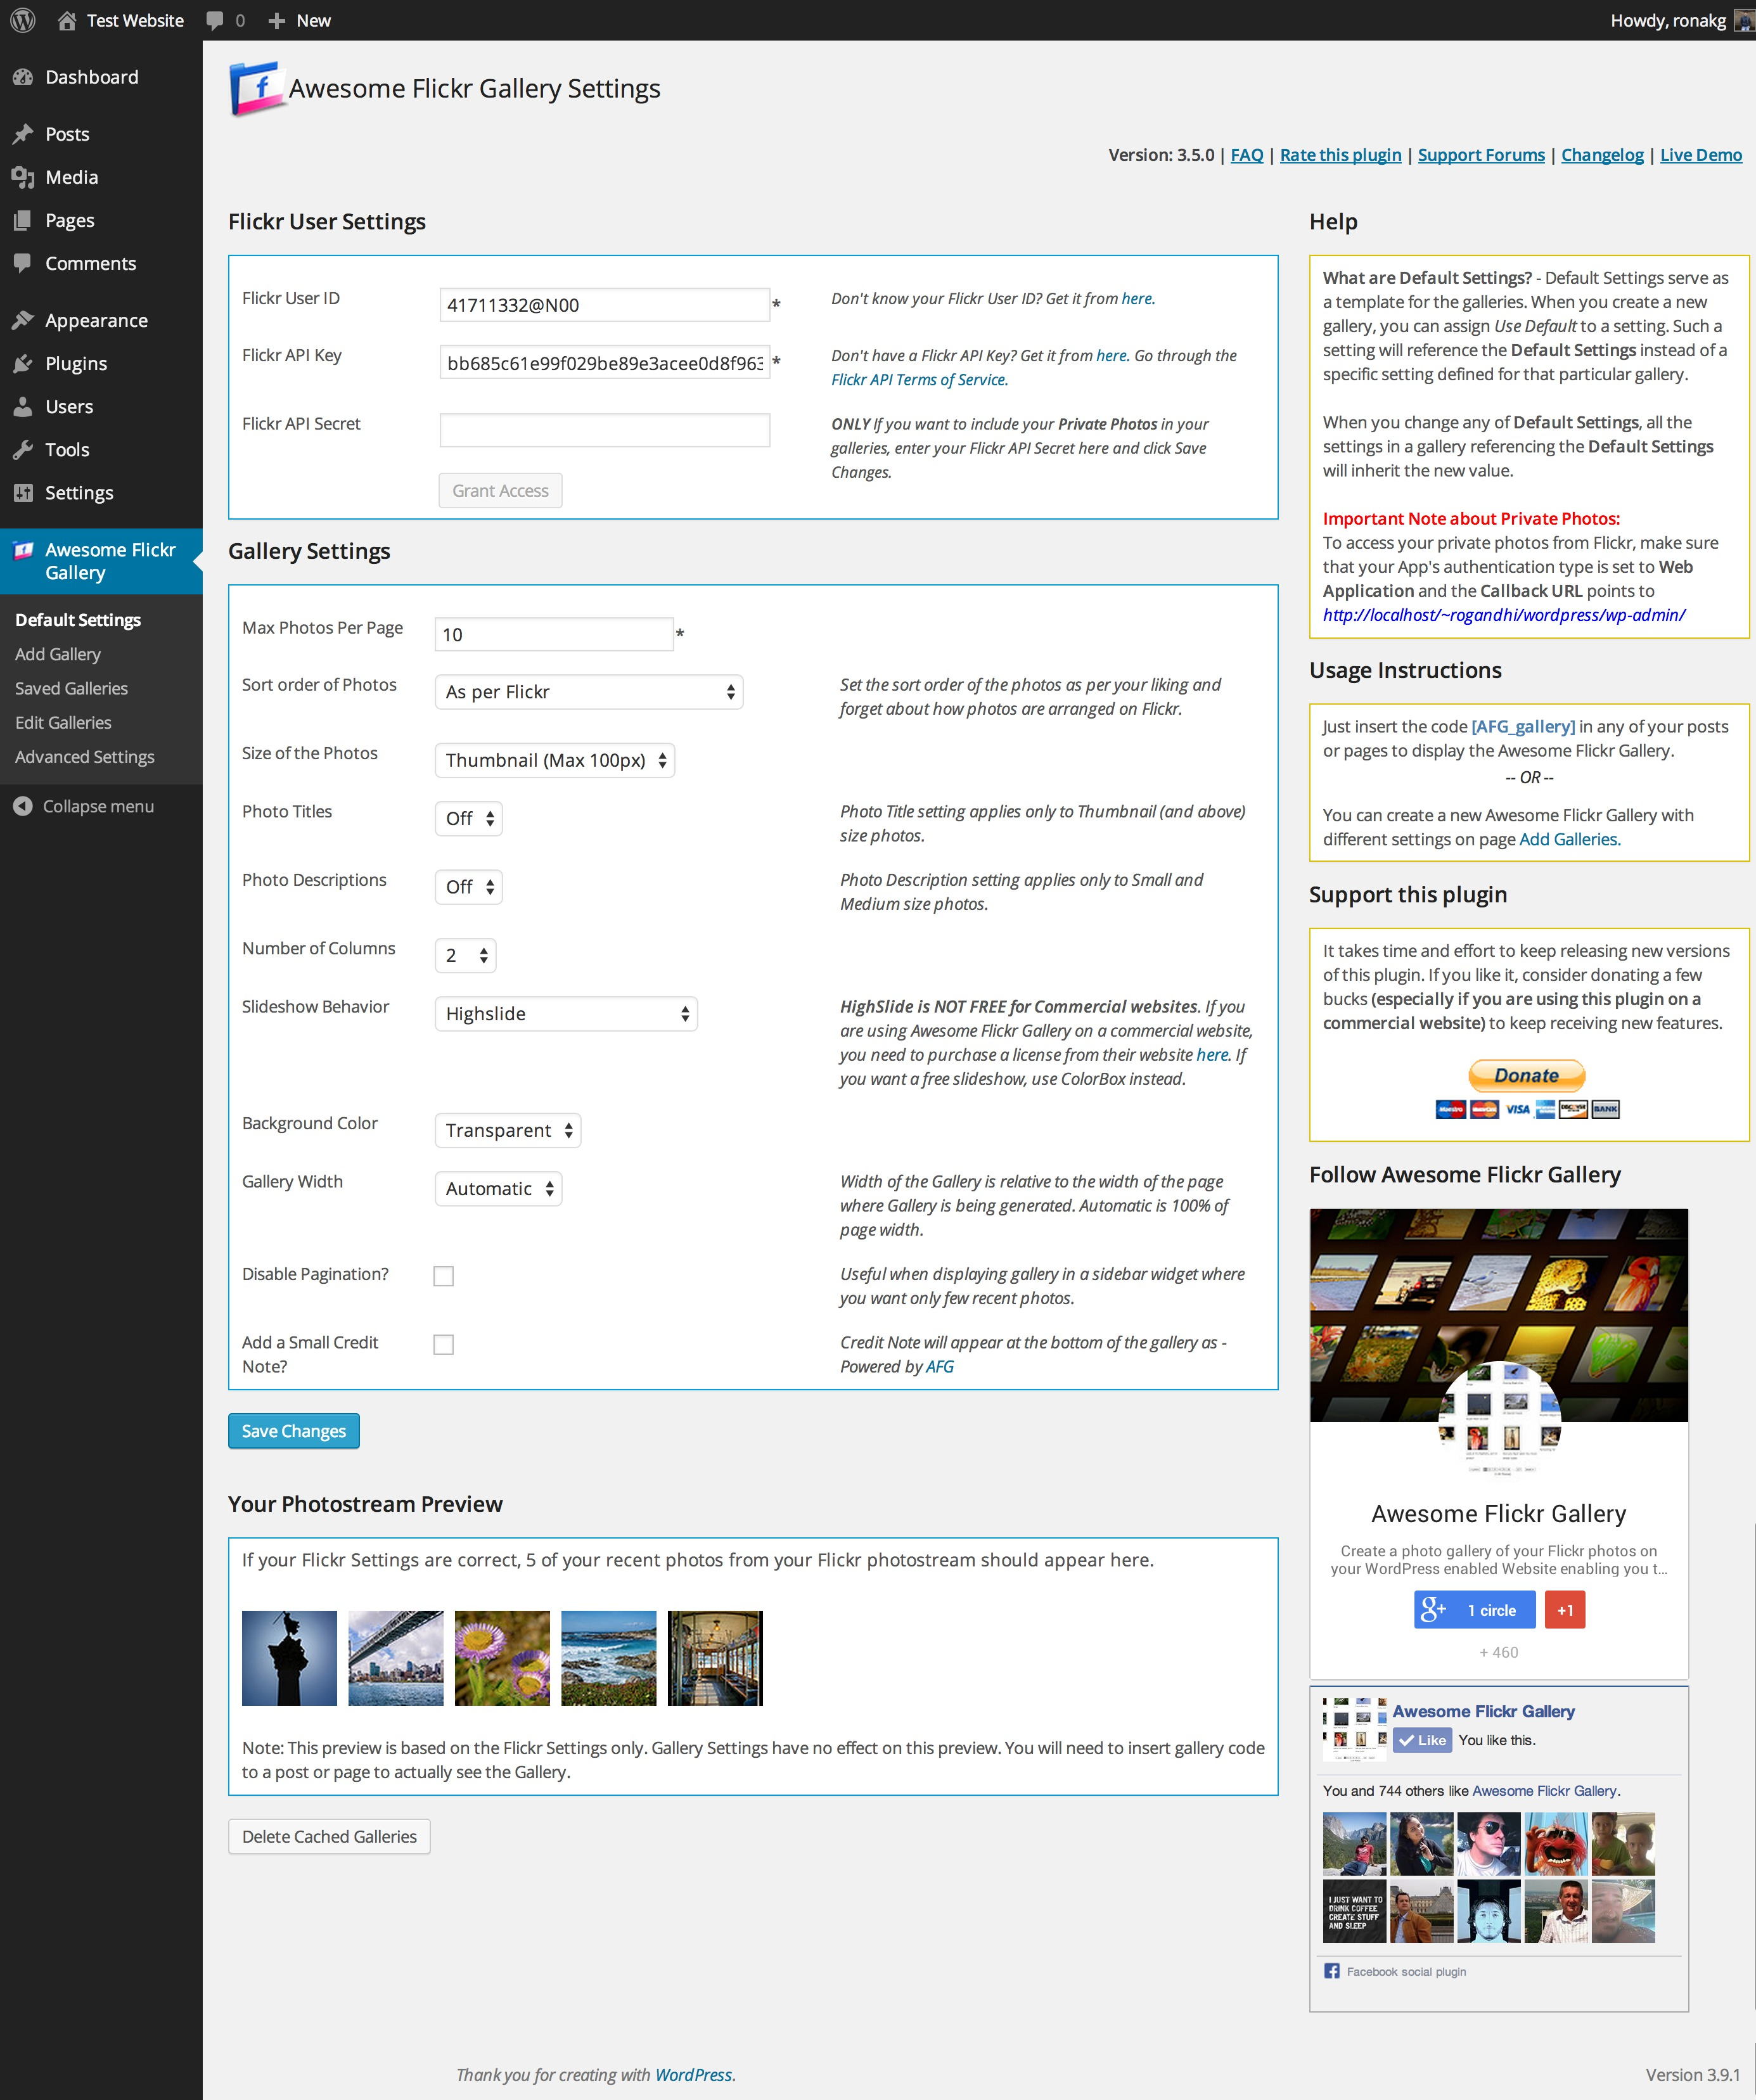 awesome-flickr-gallery-plugin screenshot 4